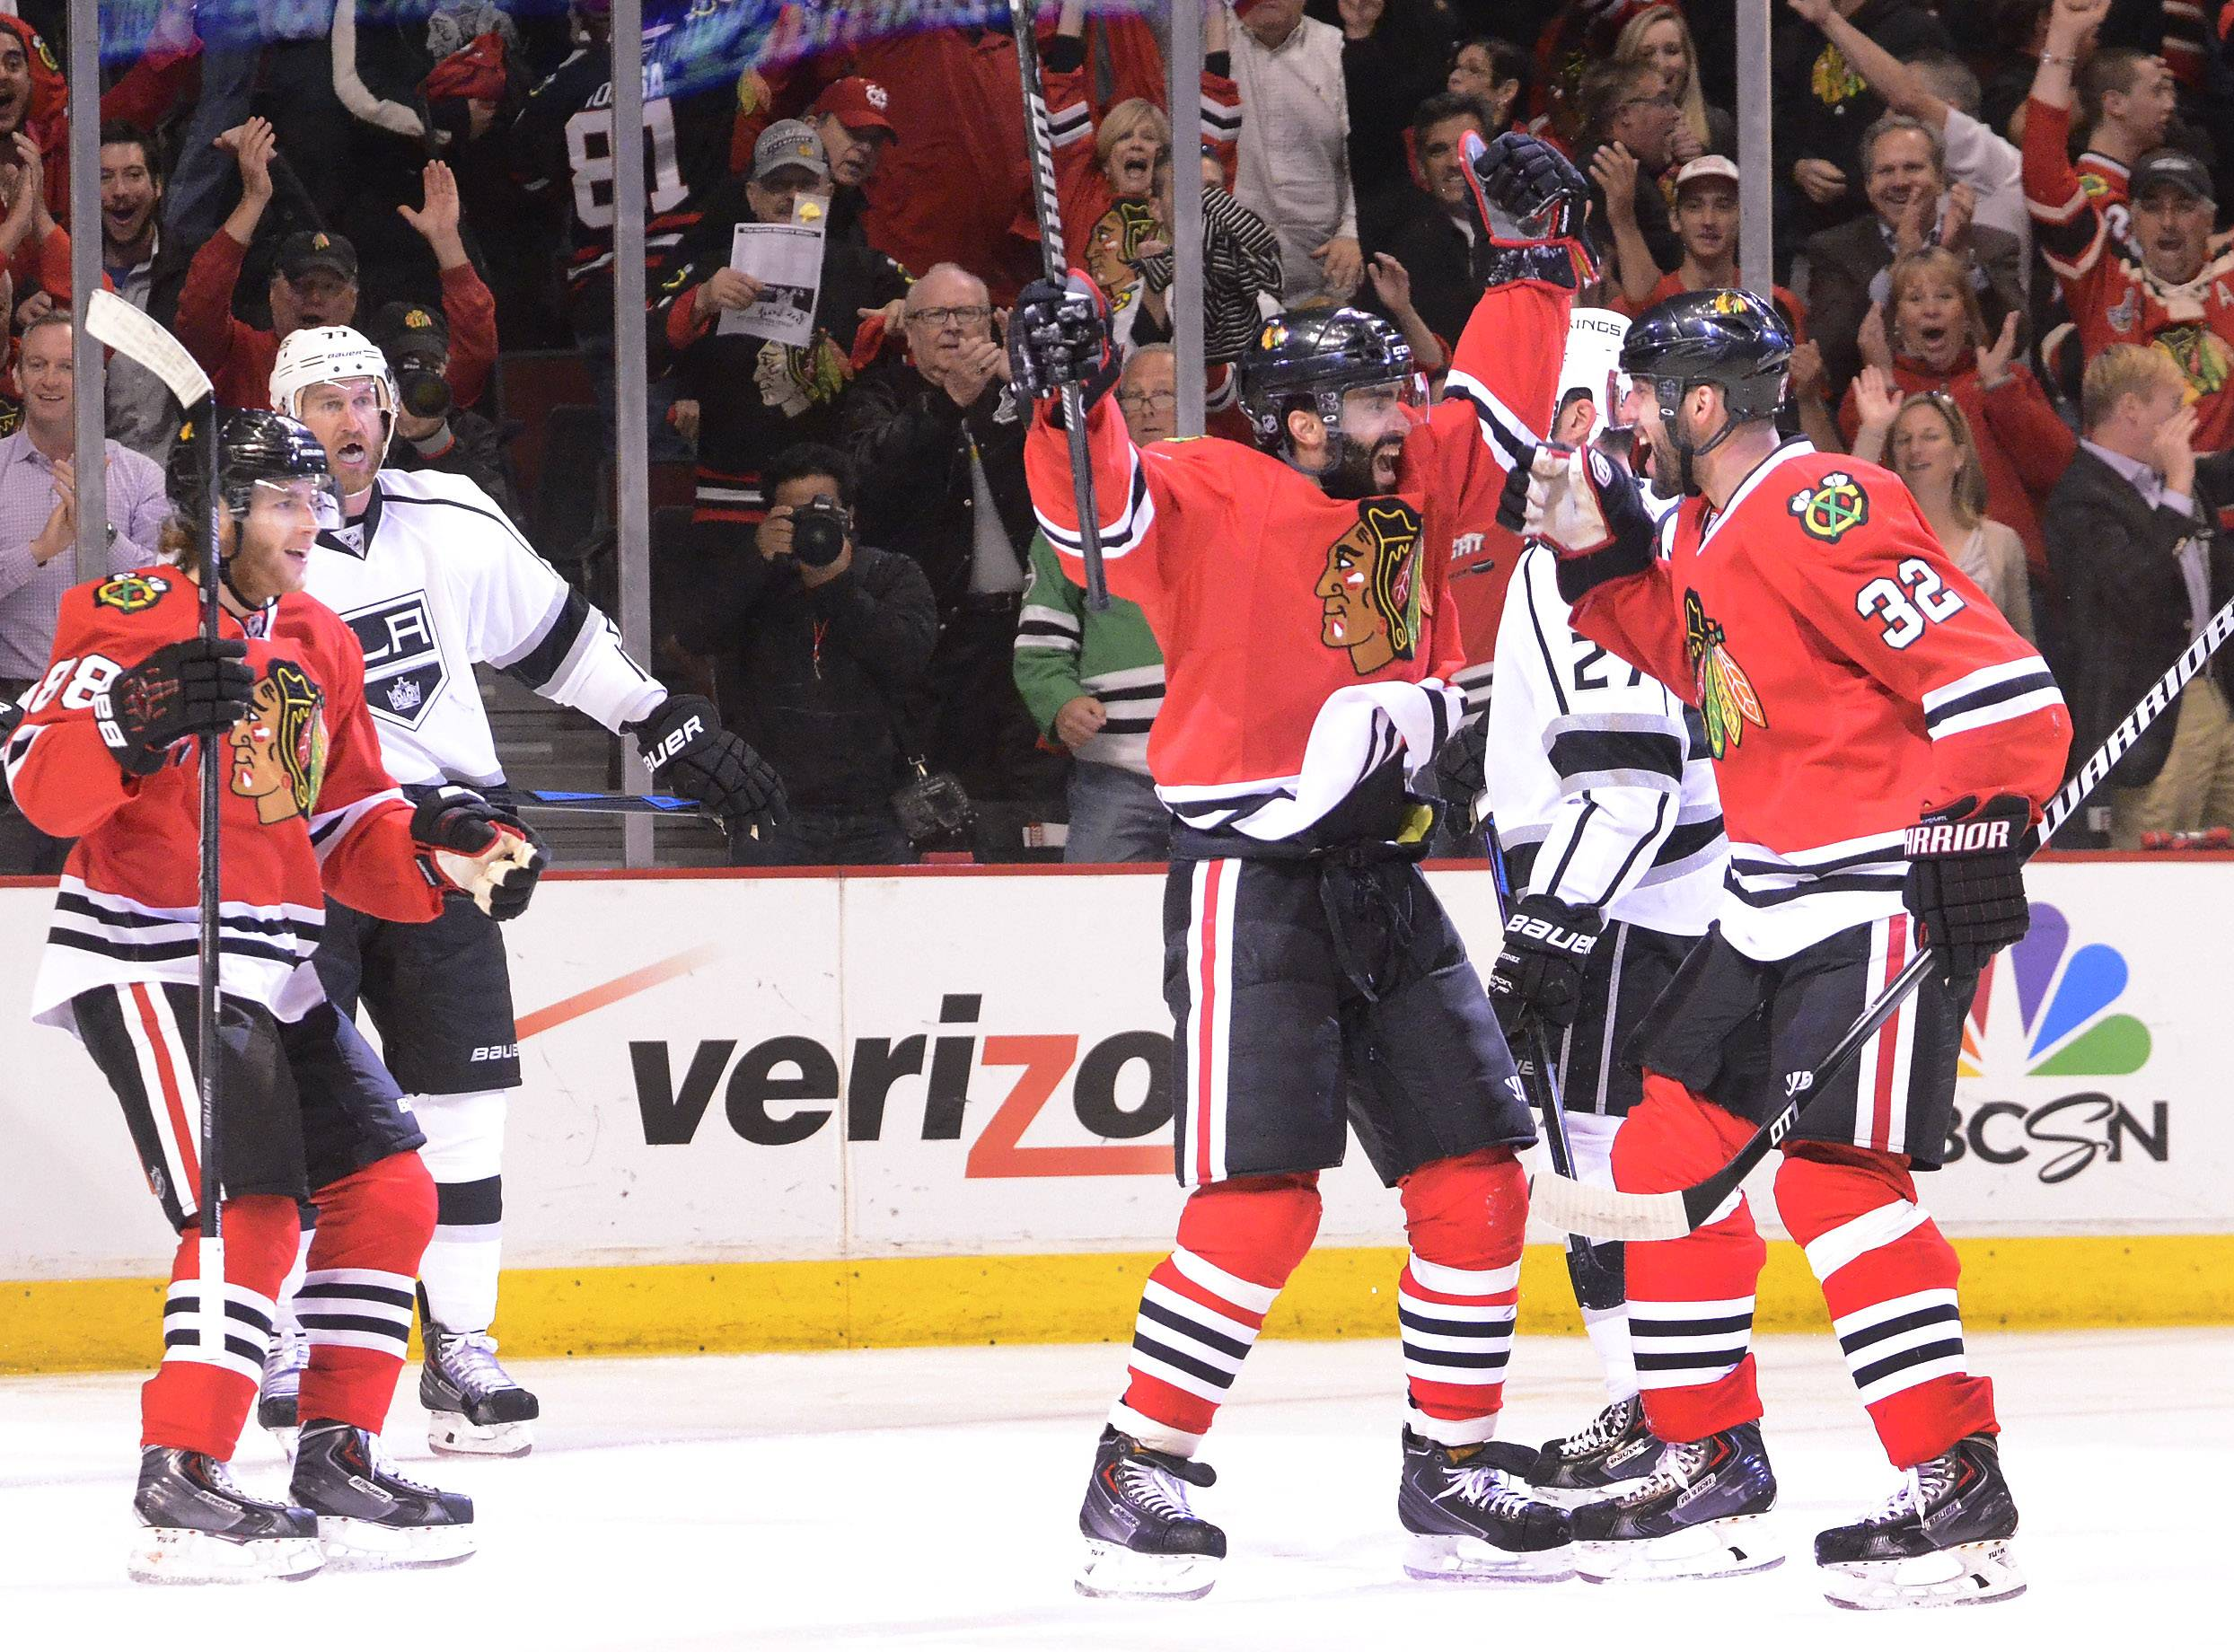 Chicago Blackhawks defenseman Johnny Oduya, center, celebrates his first-period goal with Chicago Blackhawks right wing Patrick Kane, left and Chicago Blackhawks defenseman Michal Rozsival.